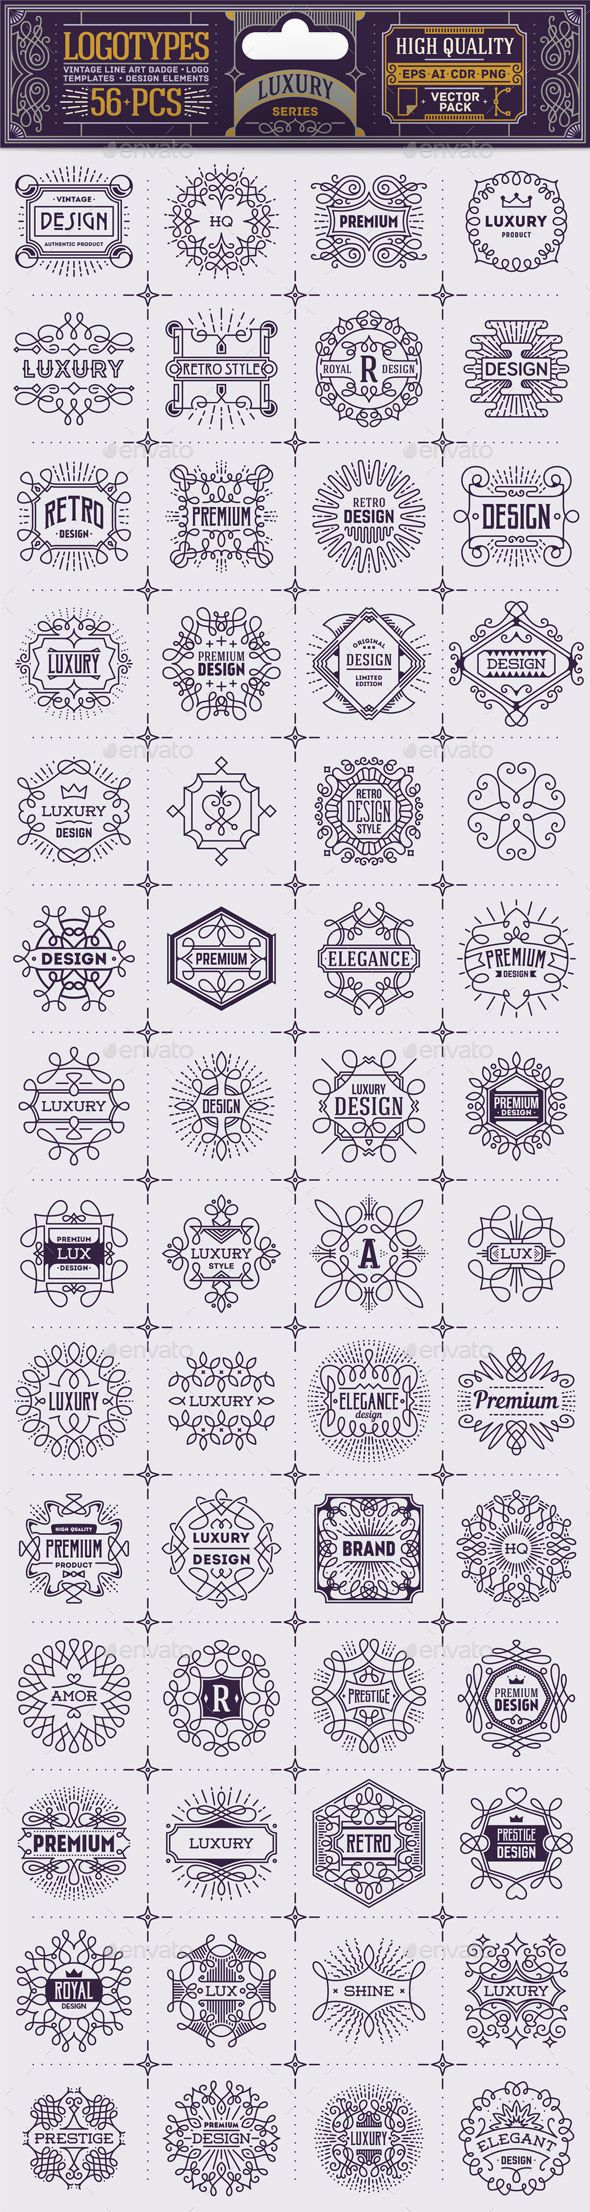 Luxury Thin Line Badges and Logos. Vector Pack. Template AI, EPS #design Download: http://graphicriver.net/item/luxury-thin-line-badges-and-logos-vector-pack/13785973?ref=ksioks